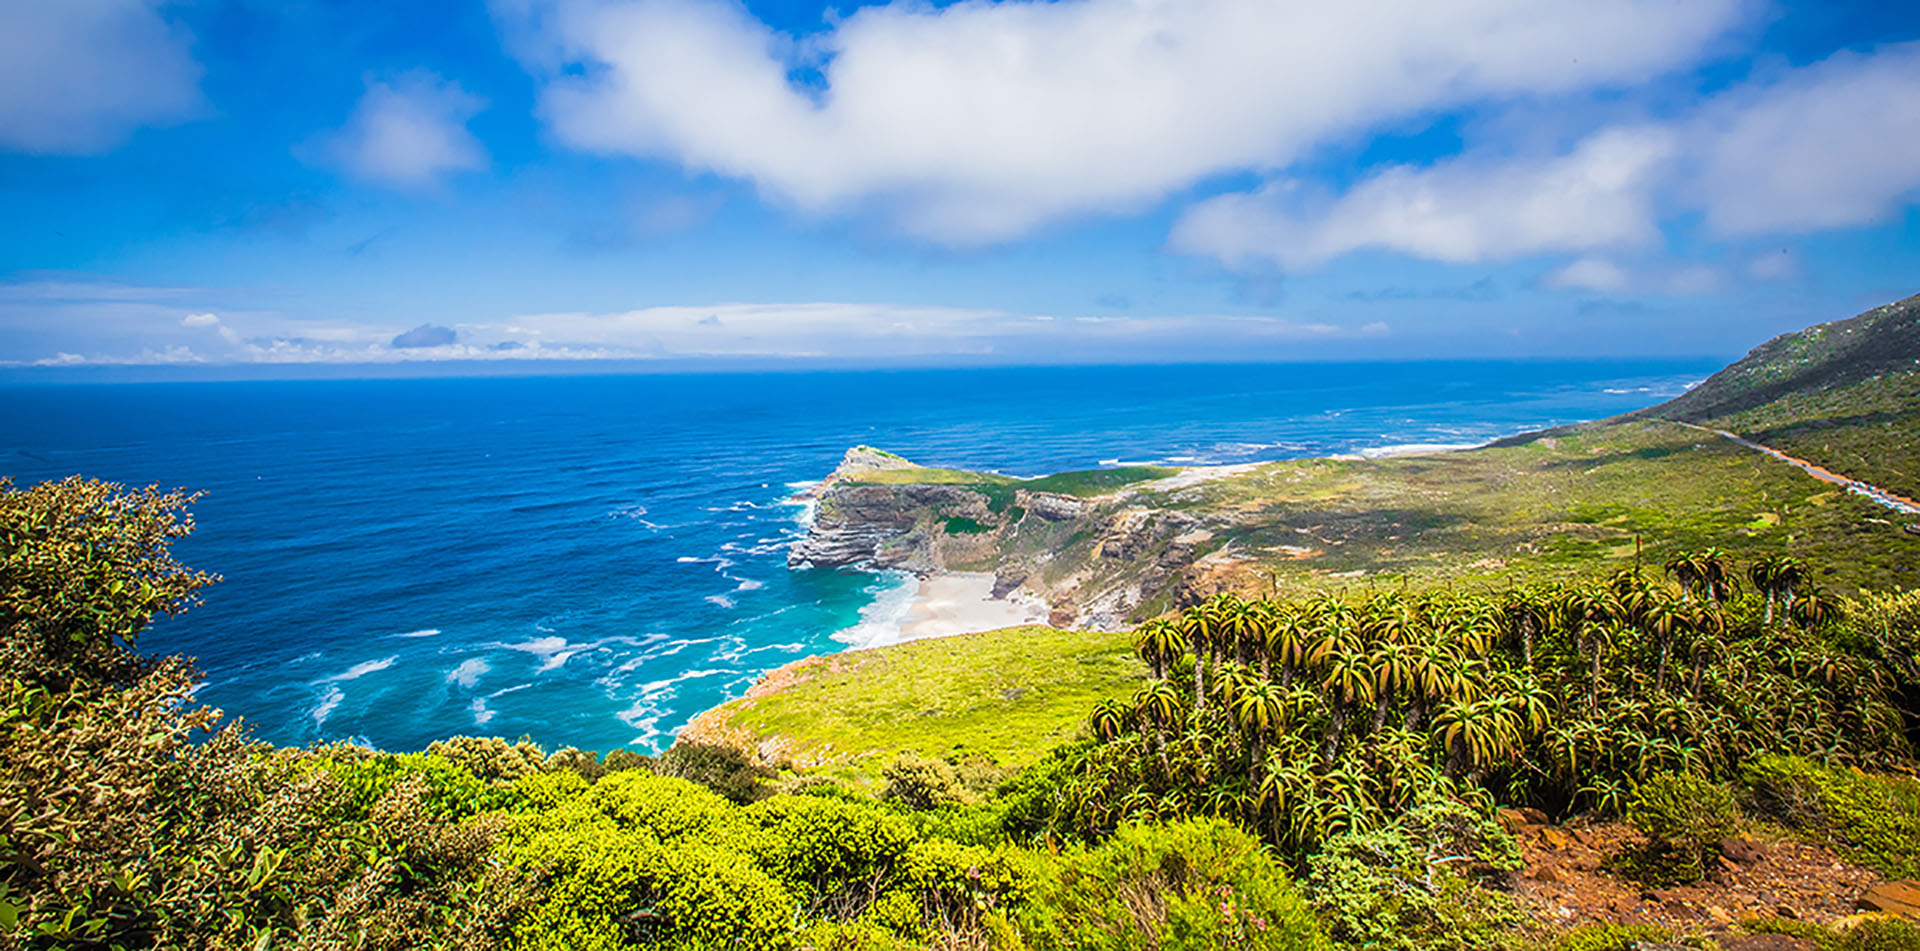 View of Cape Point in South Africa